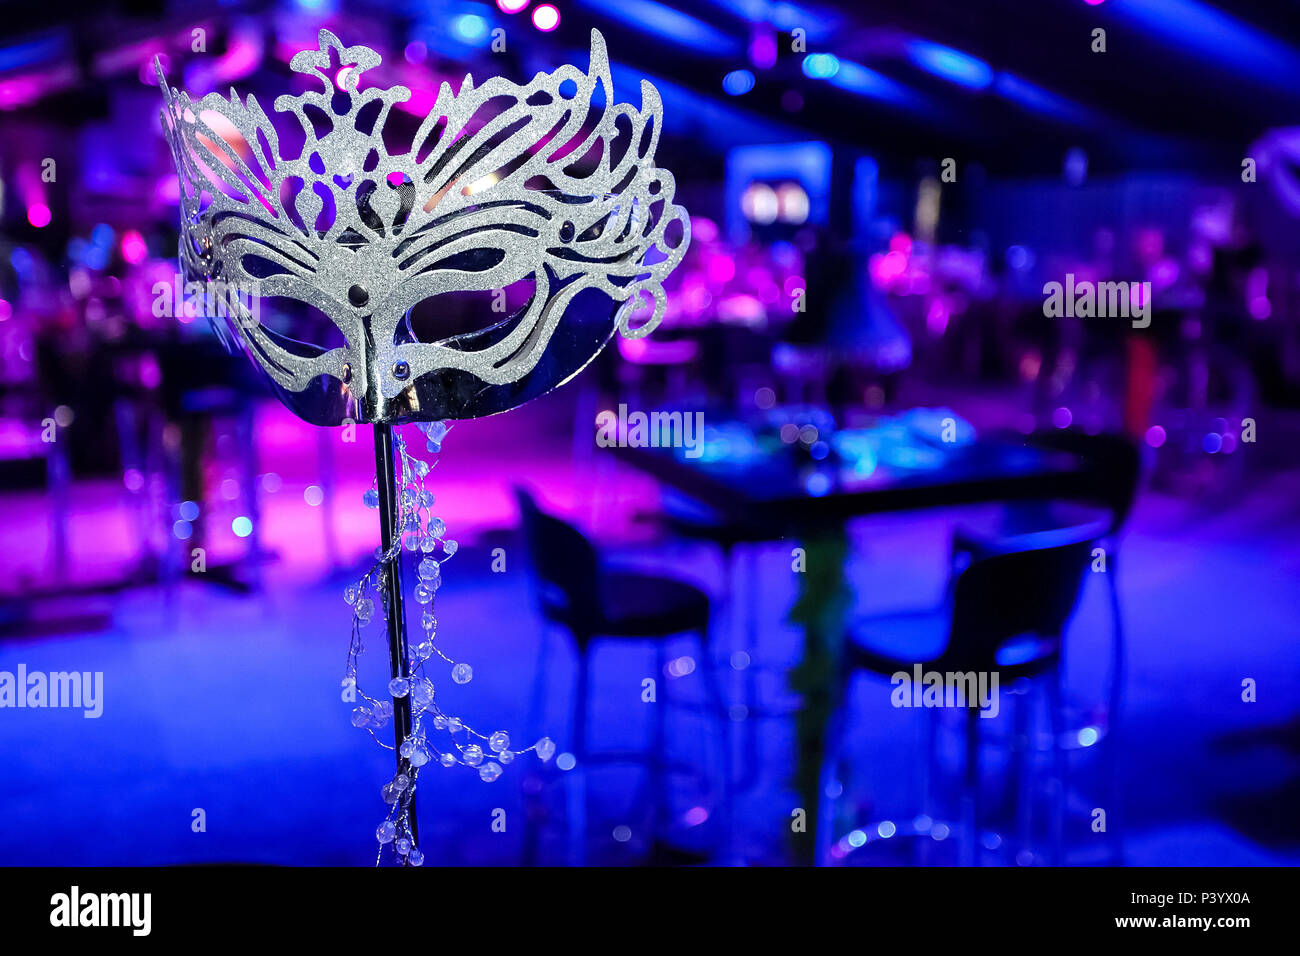 601ea7cf0049 Pink and Purple Blue Decor Masquerade Mask at corporate event or gala  dinner · Sunshine Seeds / Alamy Stock Photo